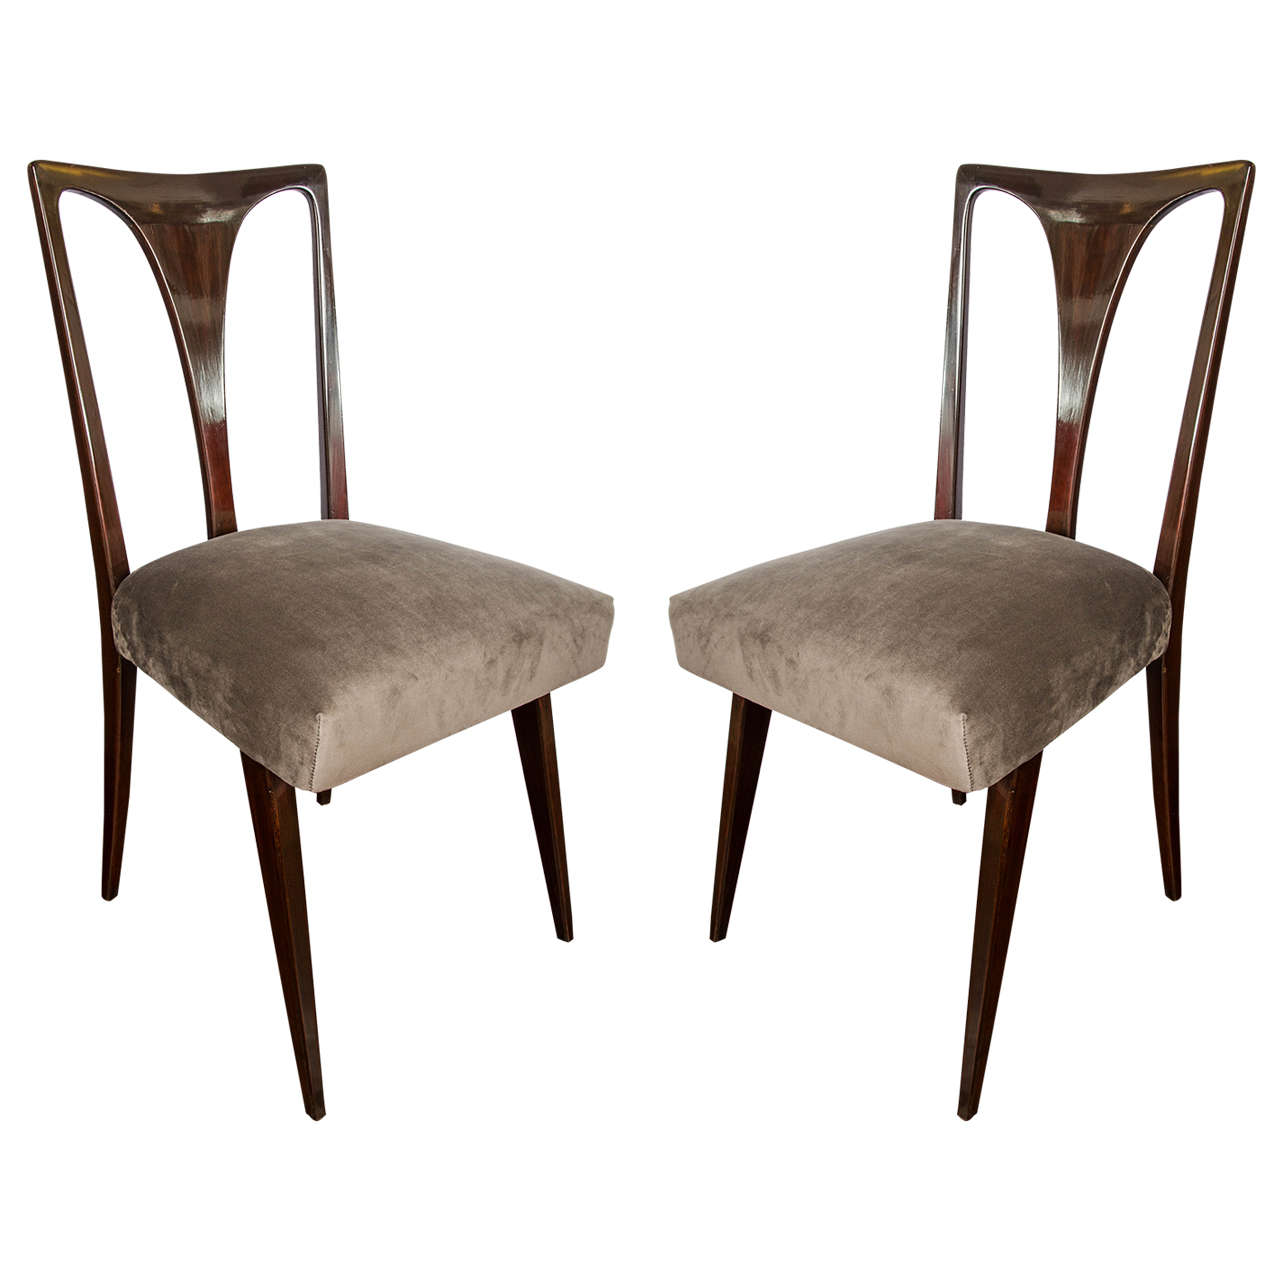 1950 Set Of Six Italian Dining Chairs For Sale